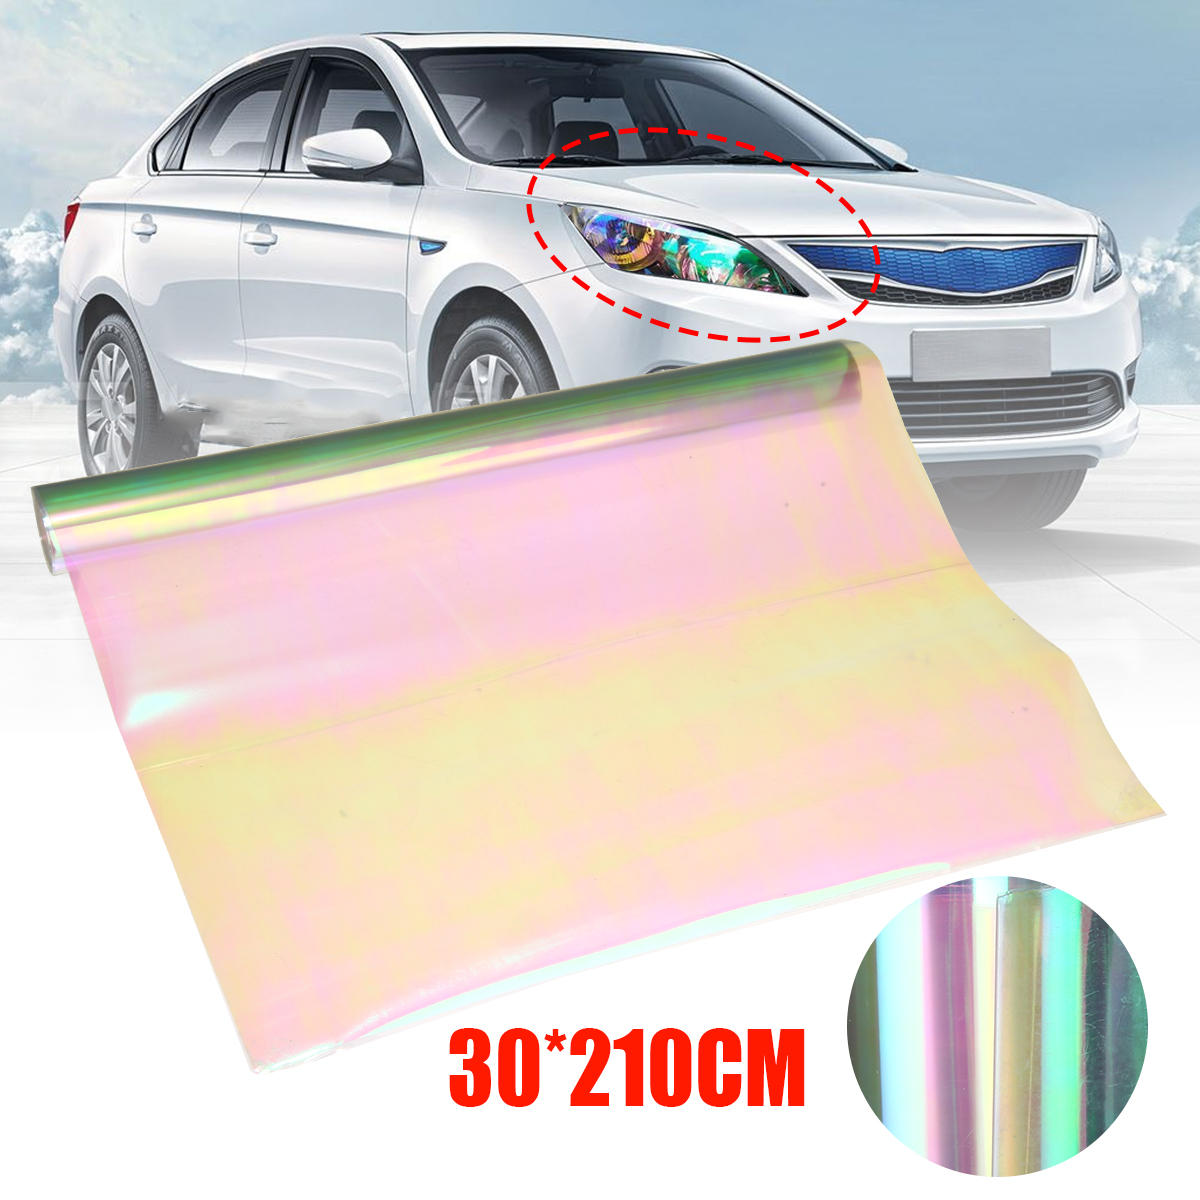 Image 2 - 30 x 210cm Auto Car Light Headlight Taillight Tint Vinyl Film Sticker Easy Stick Motorcycle Whole Car Decoration-in Car Stickers from Automobiles & Motorcycles